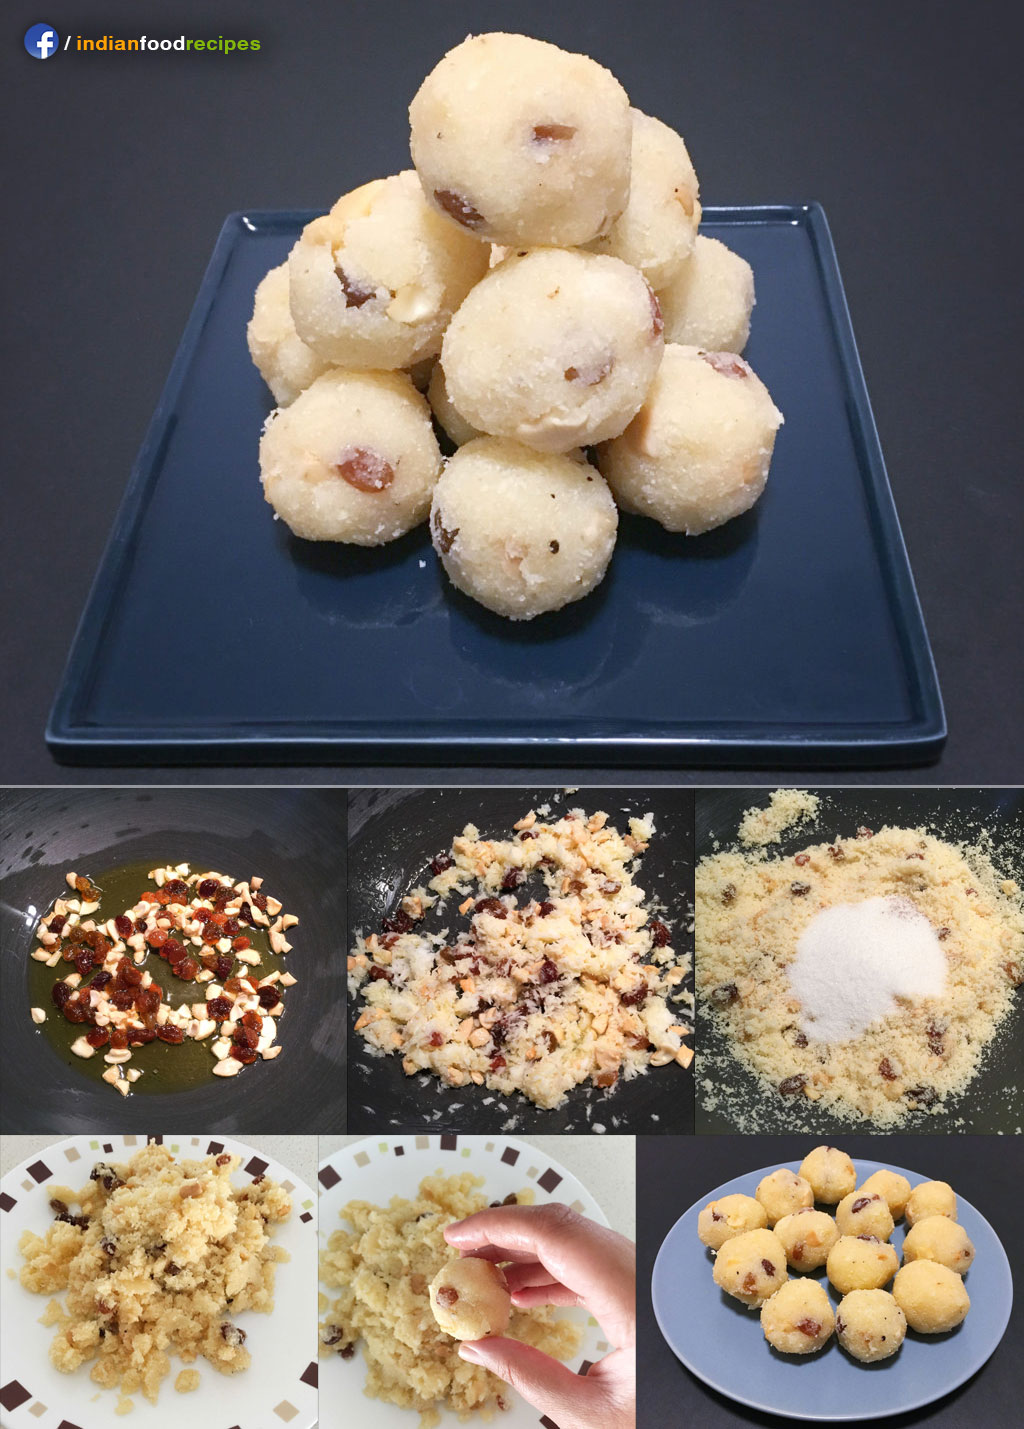 Rava Laddu Sooji ka Laddu recipe step by step